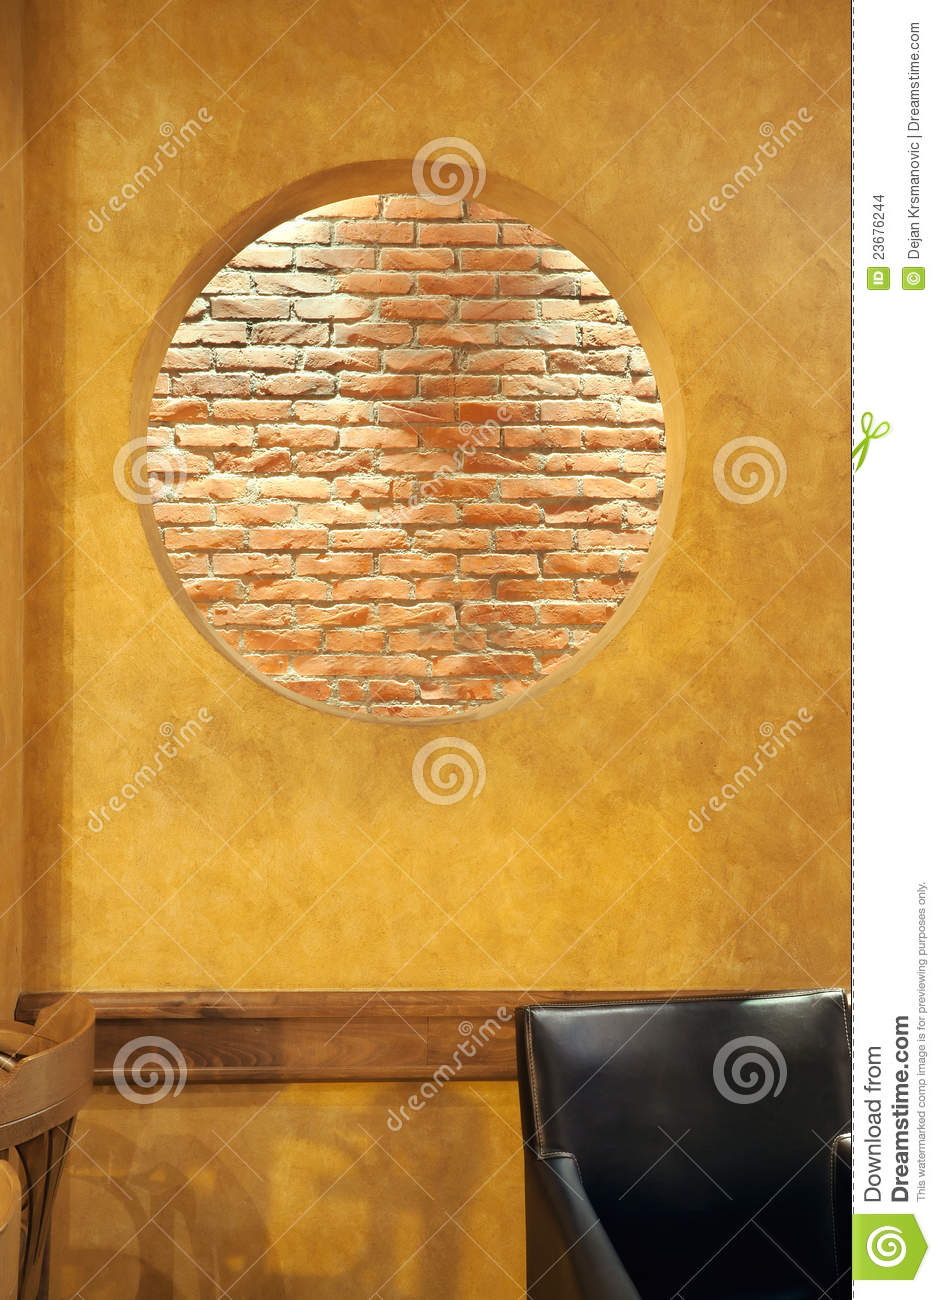 Wall Hole Design : Wall design stock images image